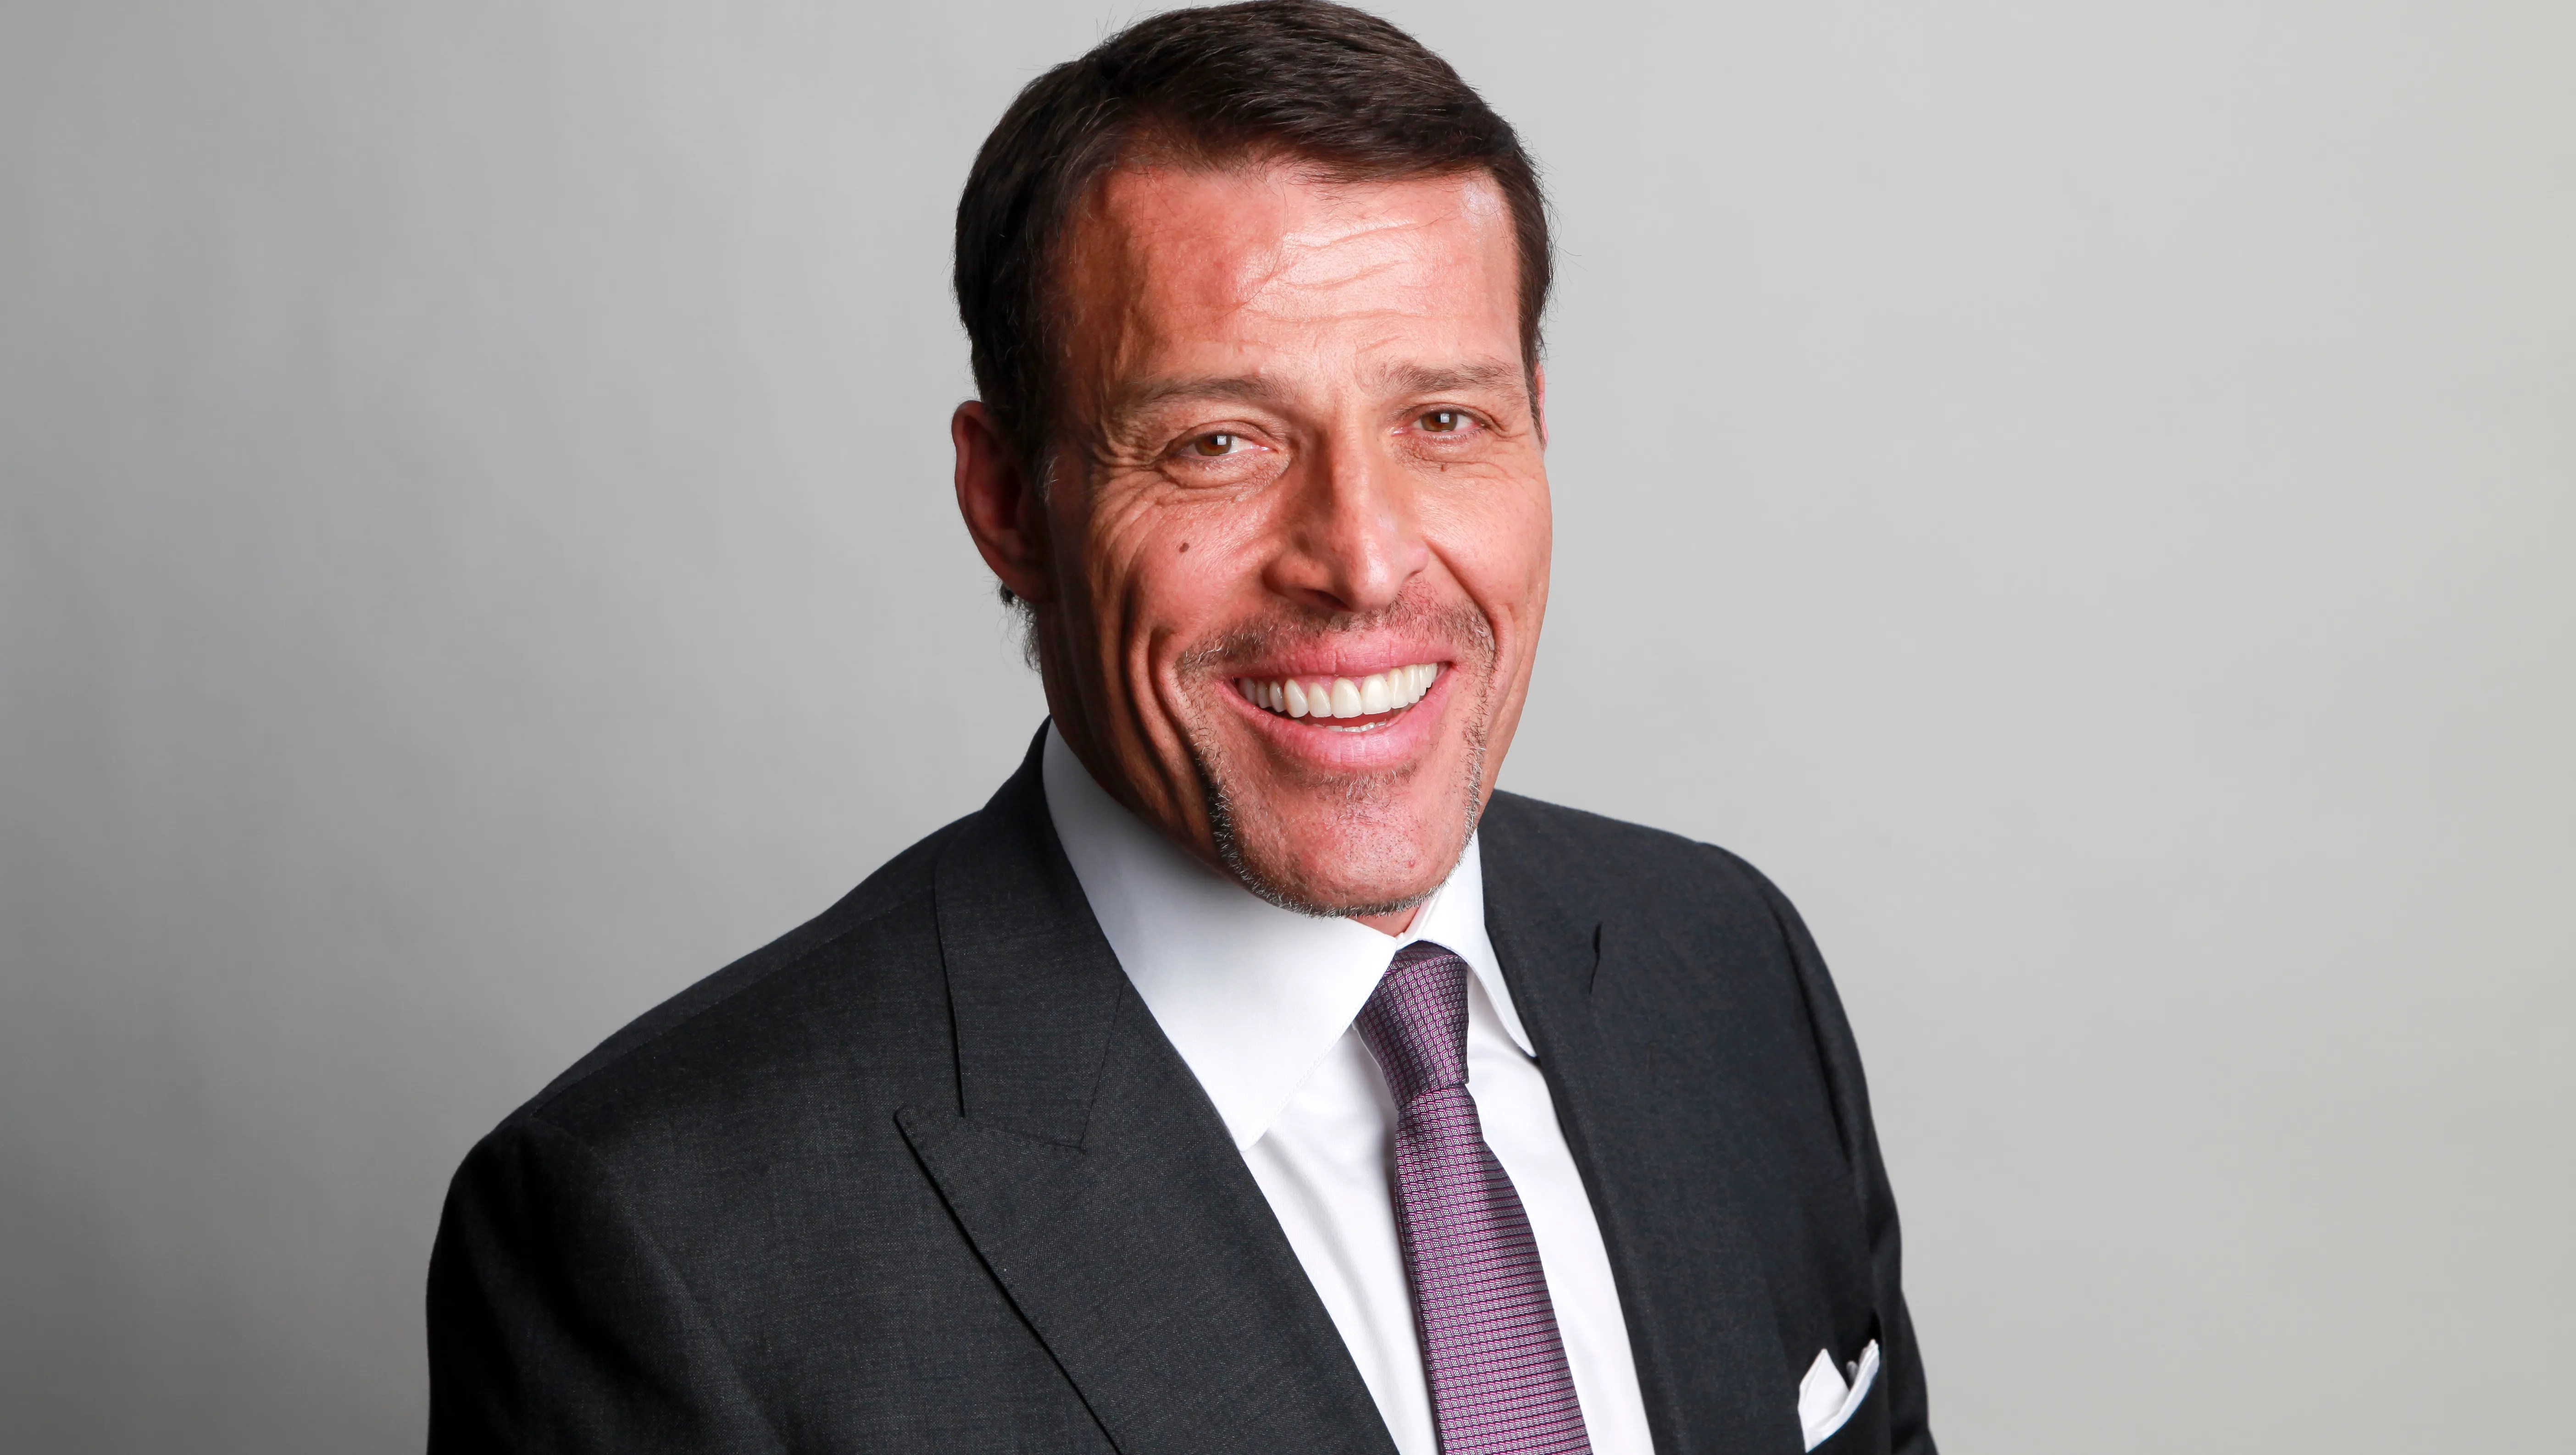 Tony Robbins Apologizes For Critical Comments On Metoo